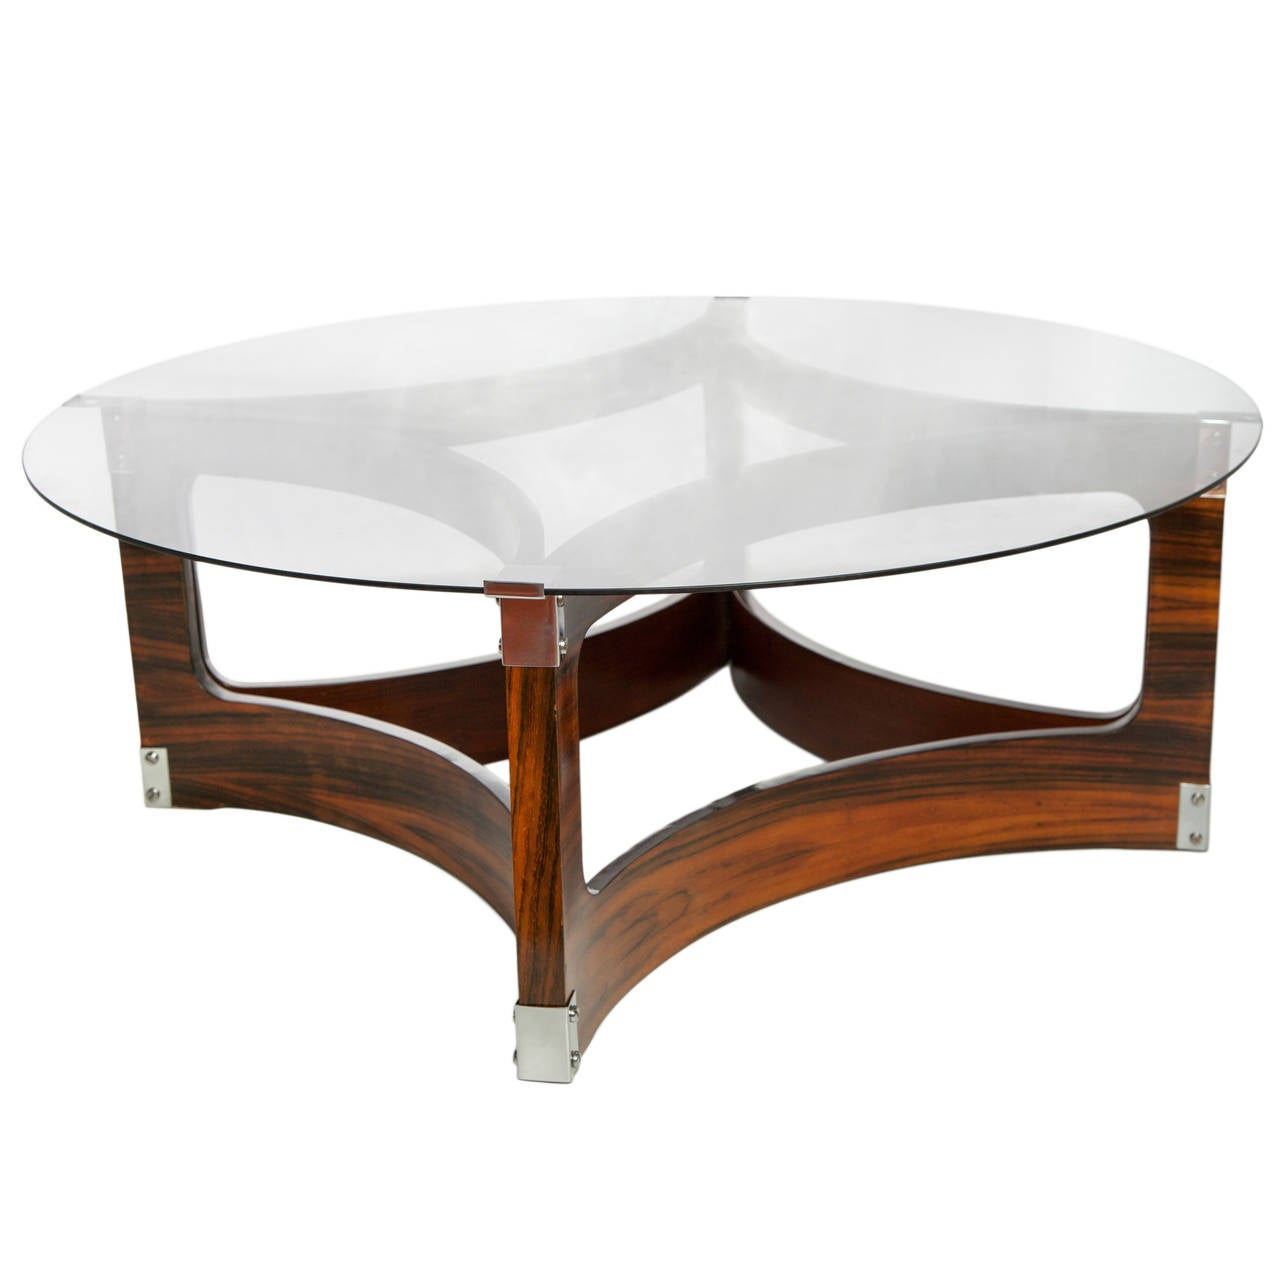 Jorge Zalszupin Coffee Table in Jacaranda with Smoked Glass Top for L'Atelier